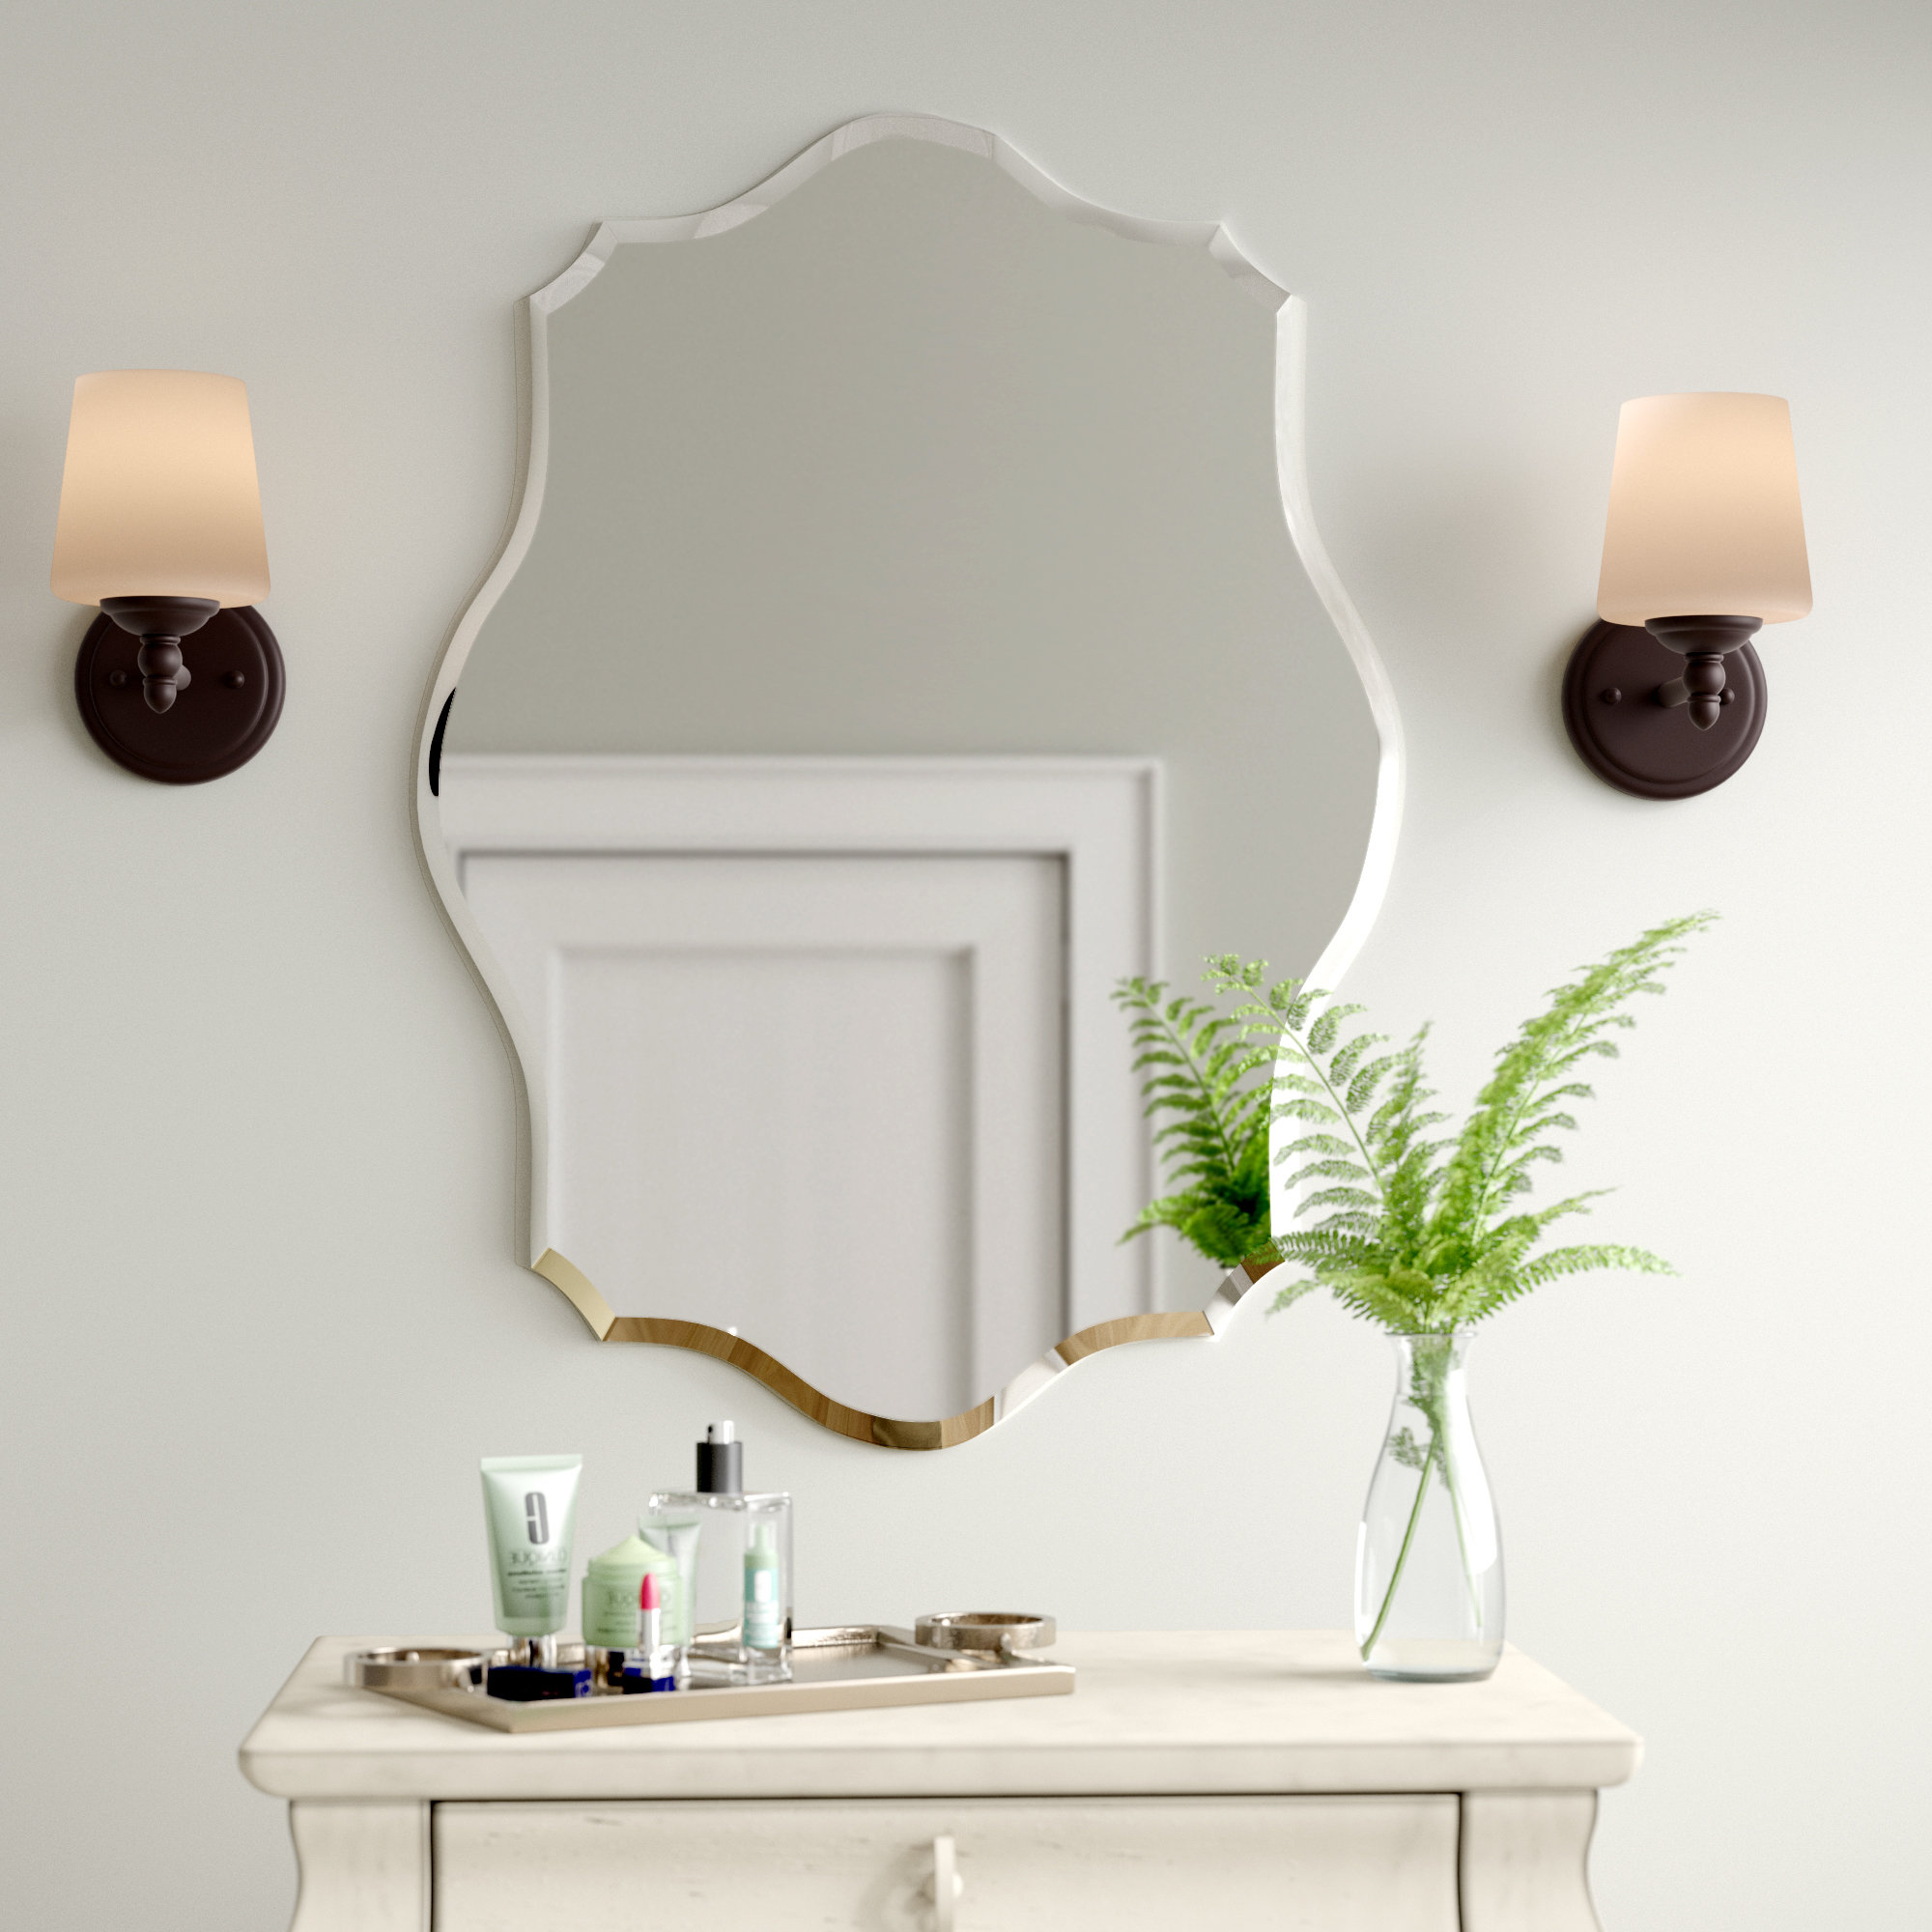 Recent Guidinha Modern & Contemporary Accent Mirrors With Birch Lane™ Heritage Guidinha Modern & Contemporary Accent Mirror (View 2 of 20)